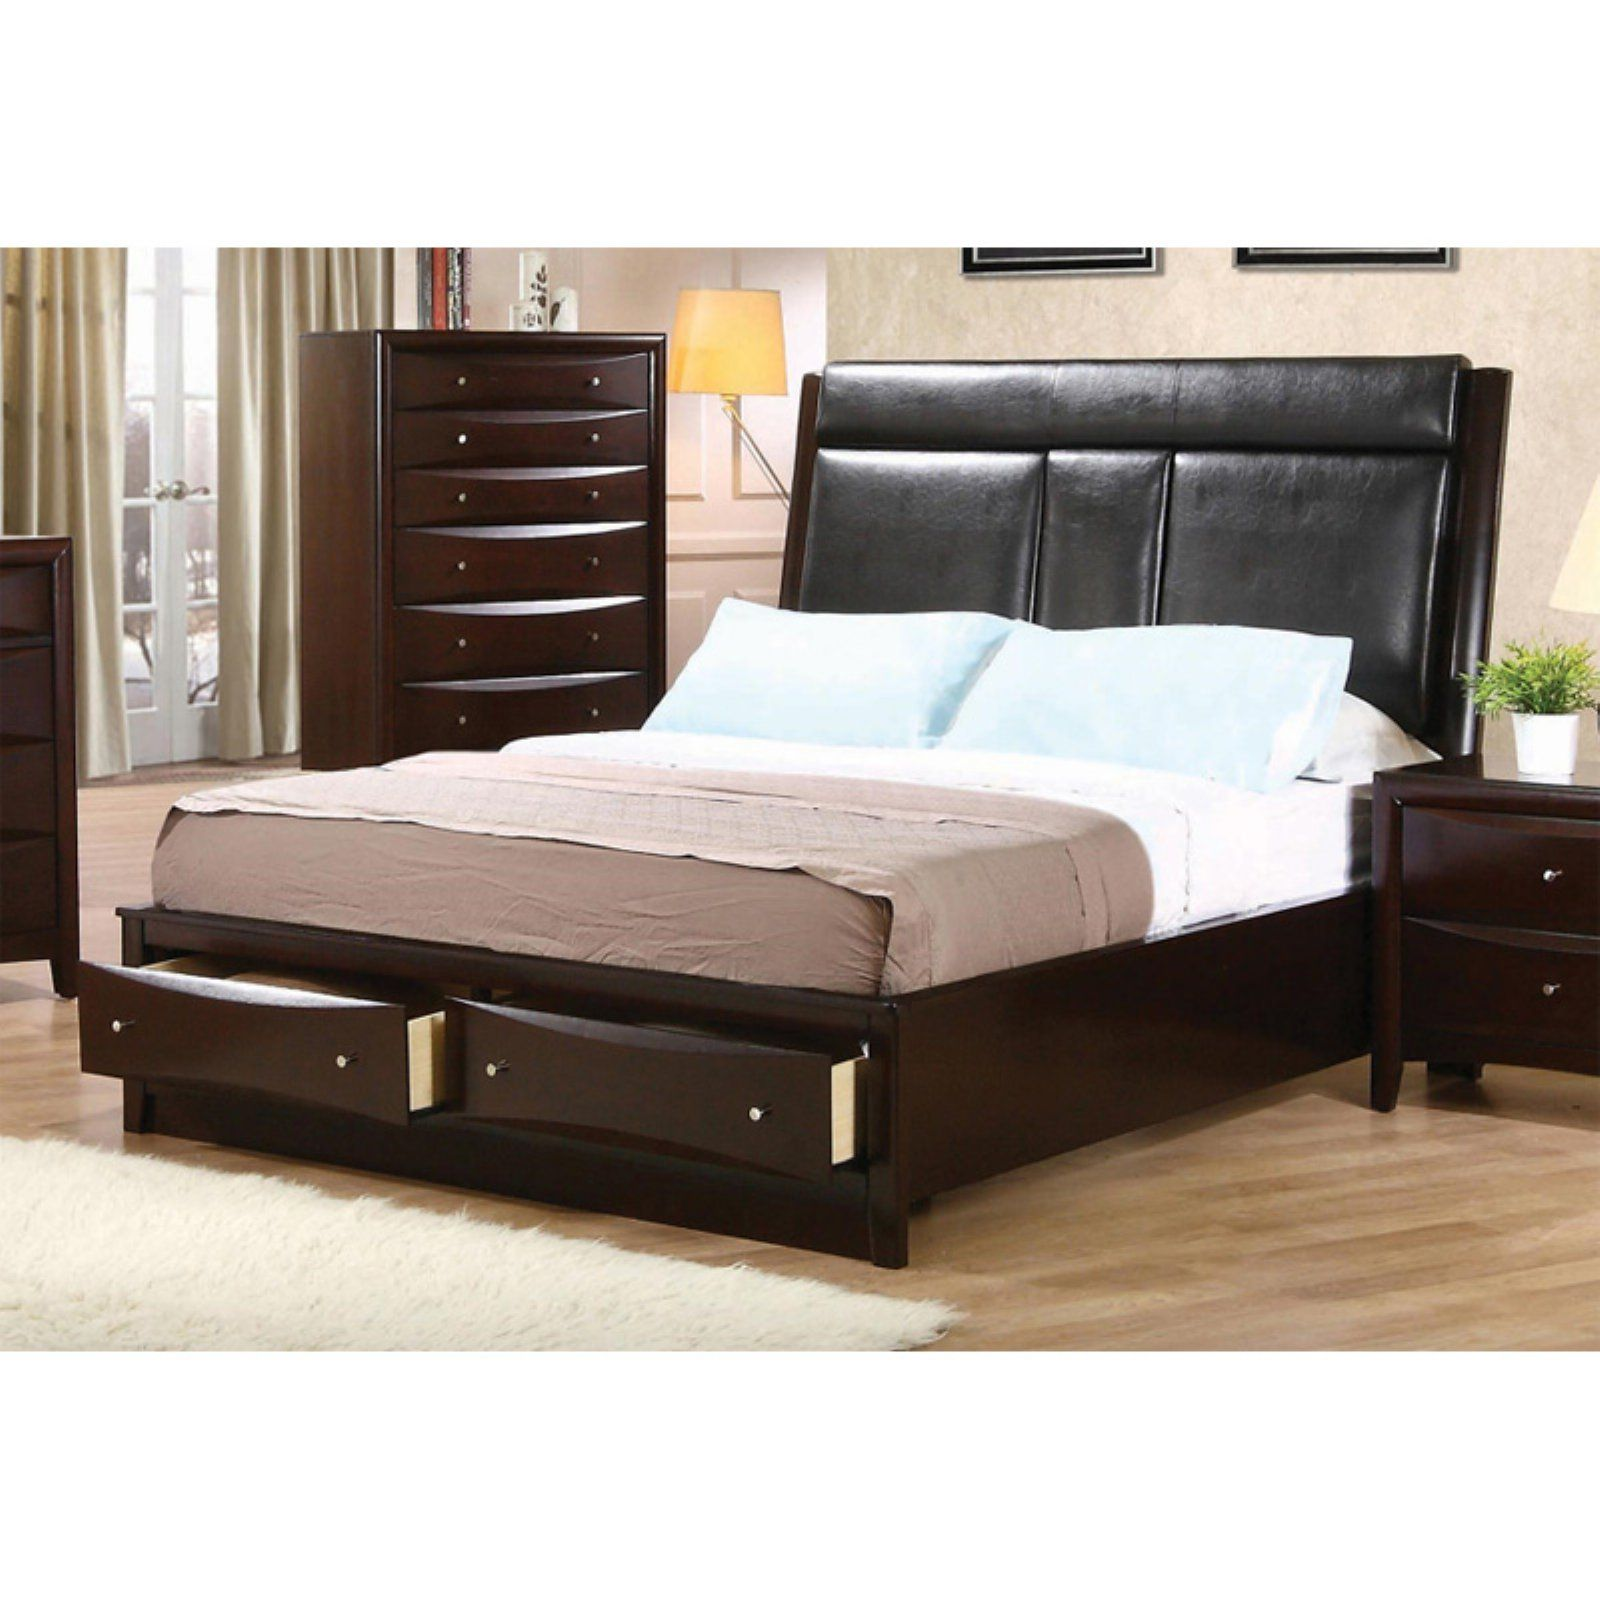 Phoenix Storage Bedroom Set From Coaster 200409: Coaster Furniture Phoenix Upholstered Storage Bed, Size